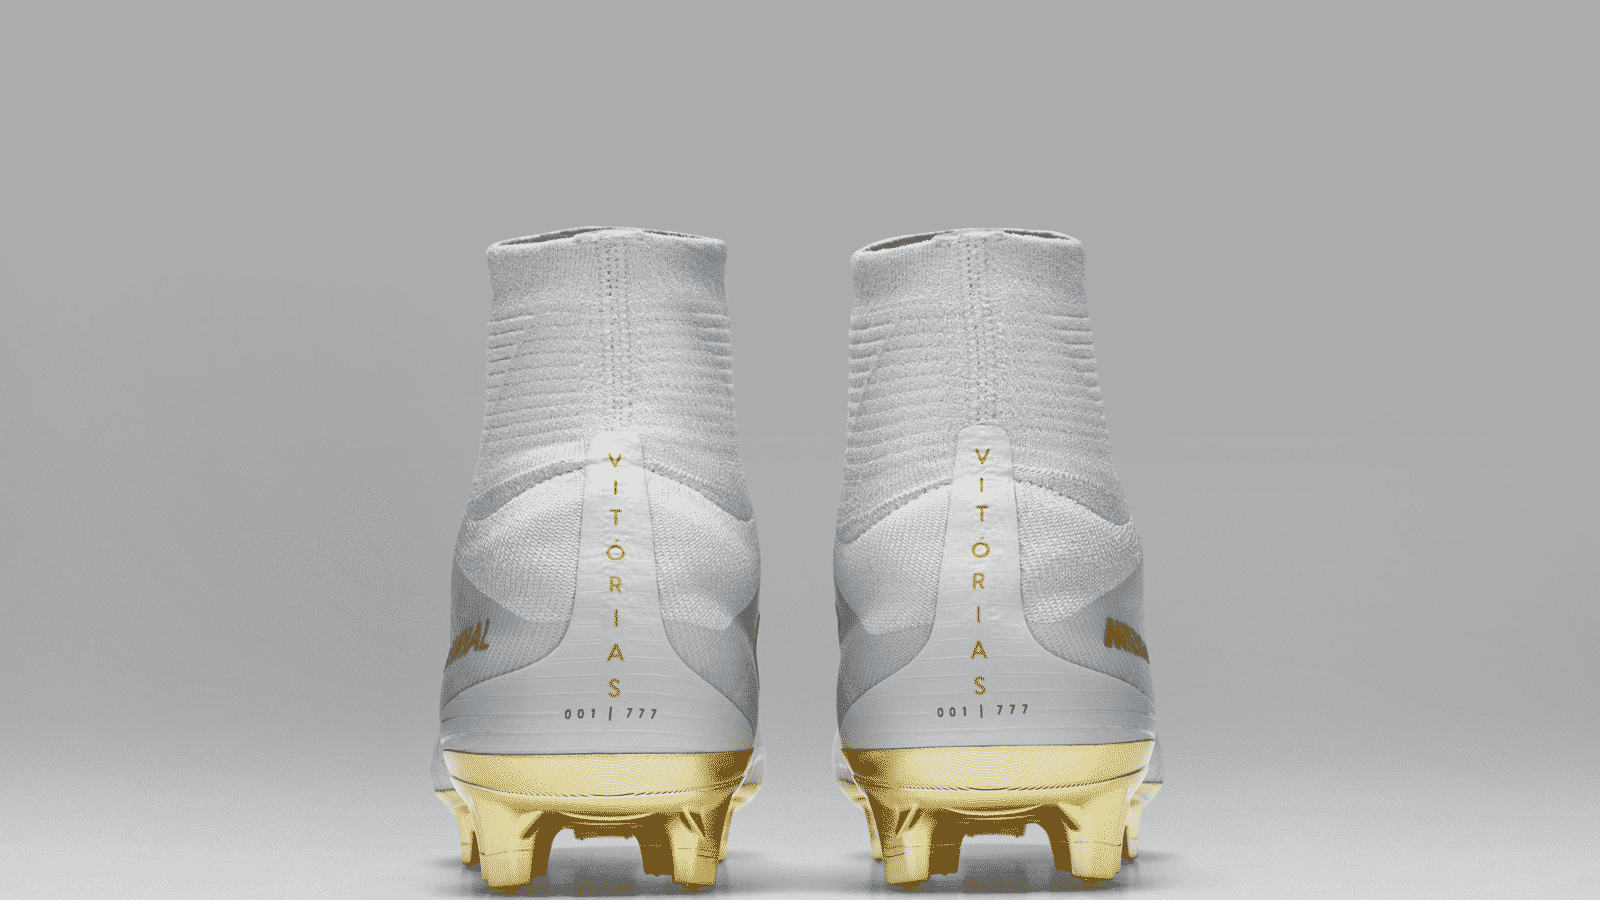 chaussure-foot-nike-mercurial-superfly-cr7-ballon-or-2016-5